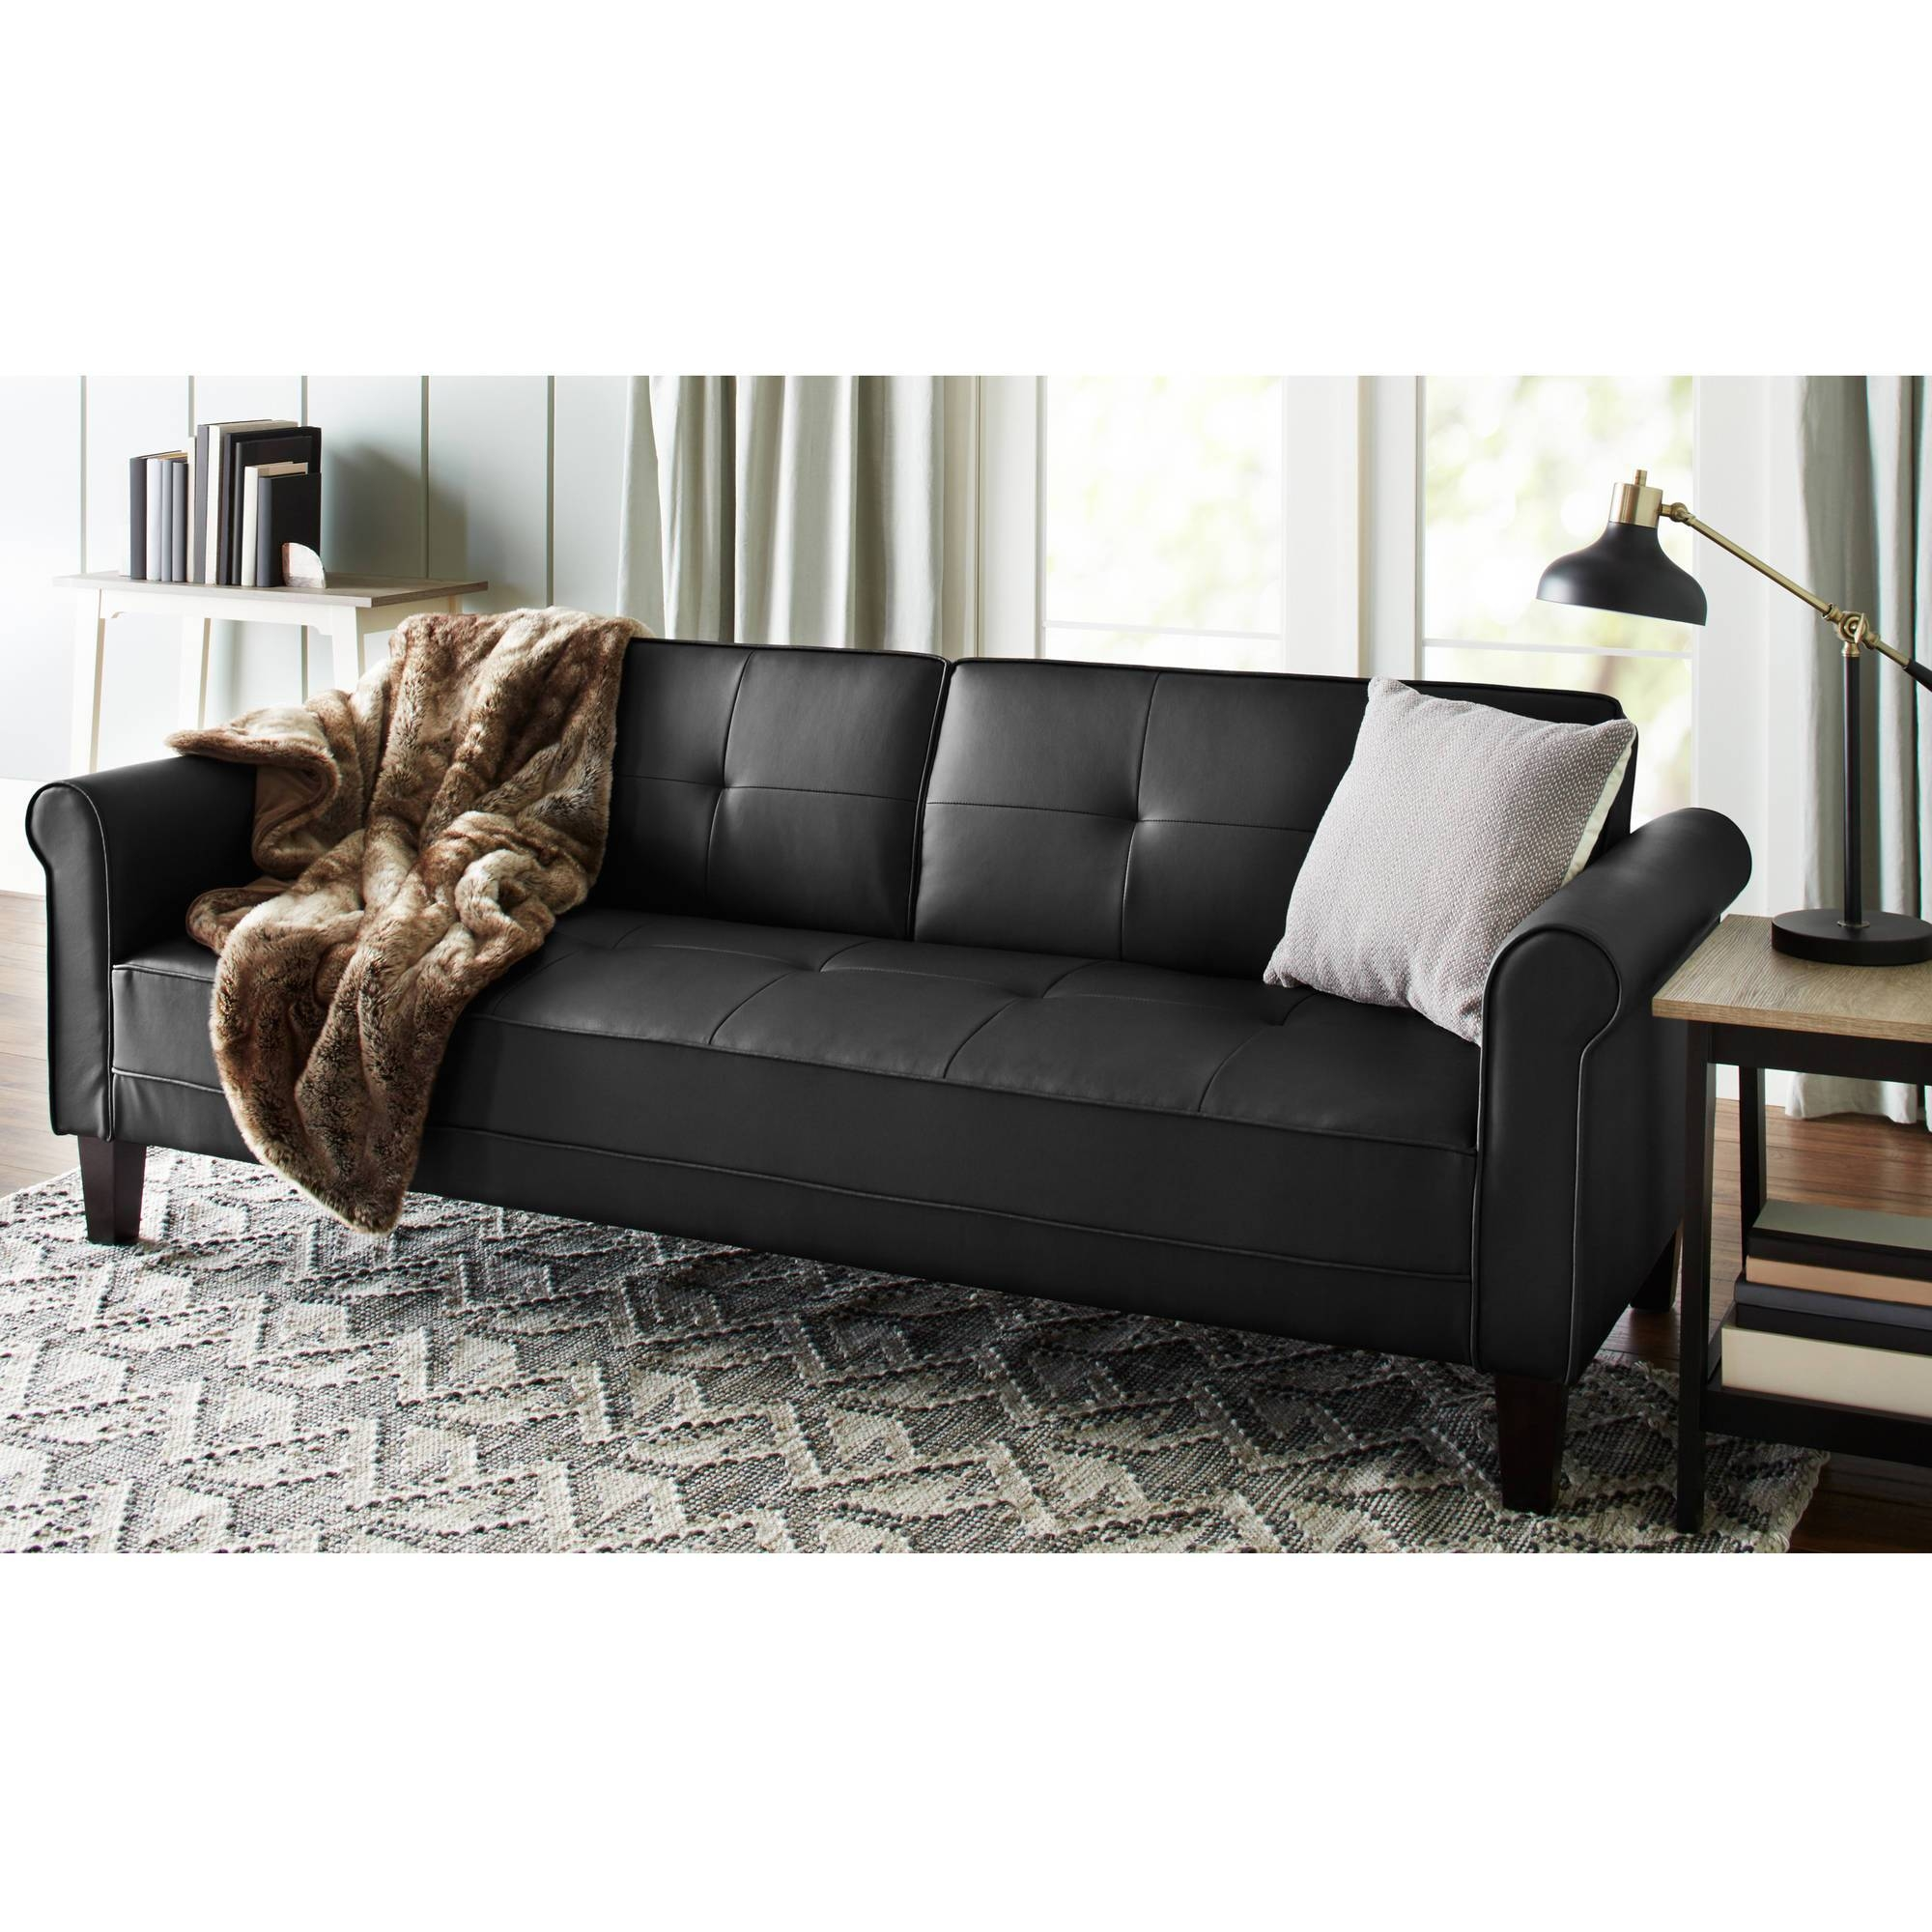 Furniture: Futon Full Size Mattress | Faux Leather Futon | Futon for Faux Leather Futon Sofas (Image 7 of 15)